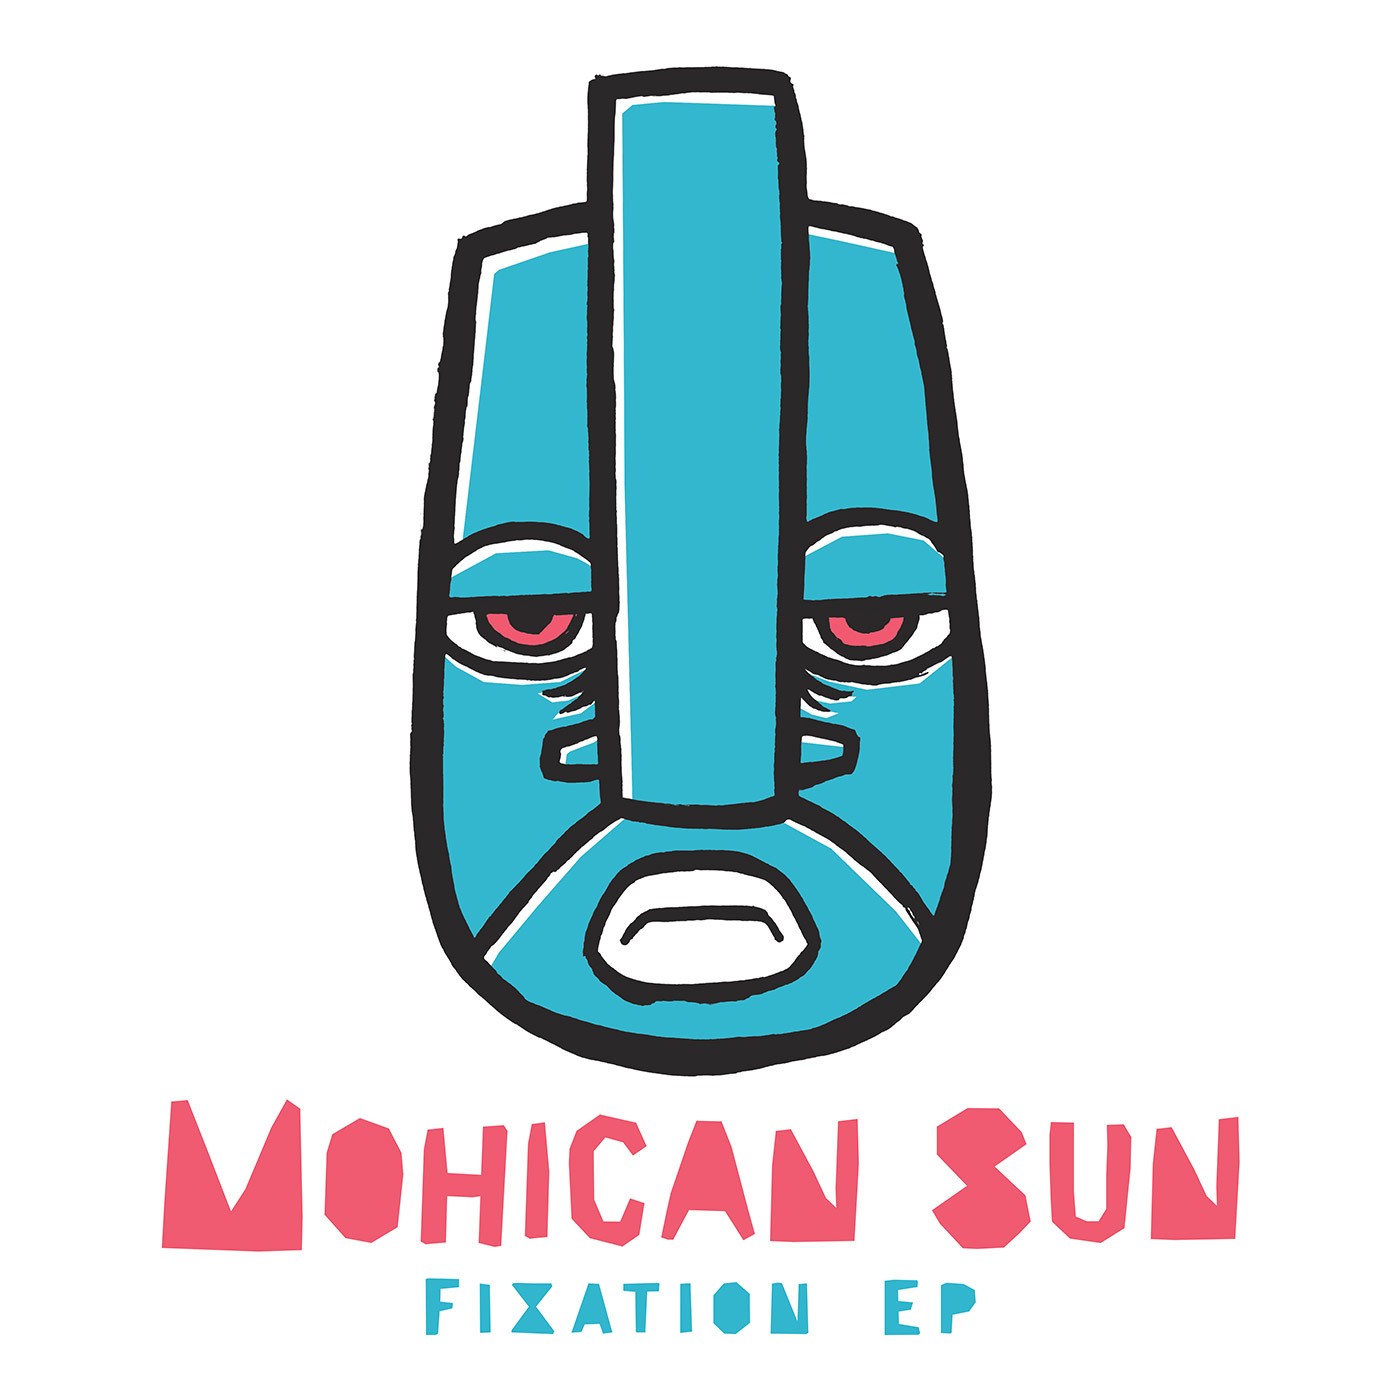 INT039 - Mohican Sun - Fixation EP